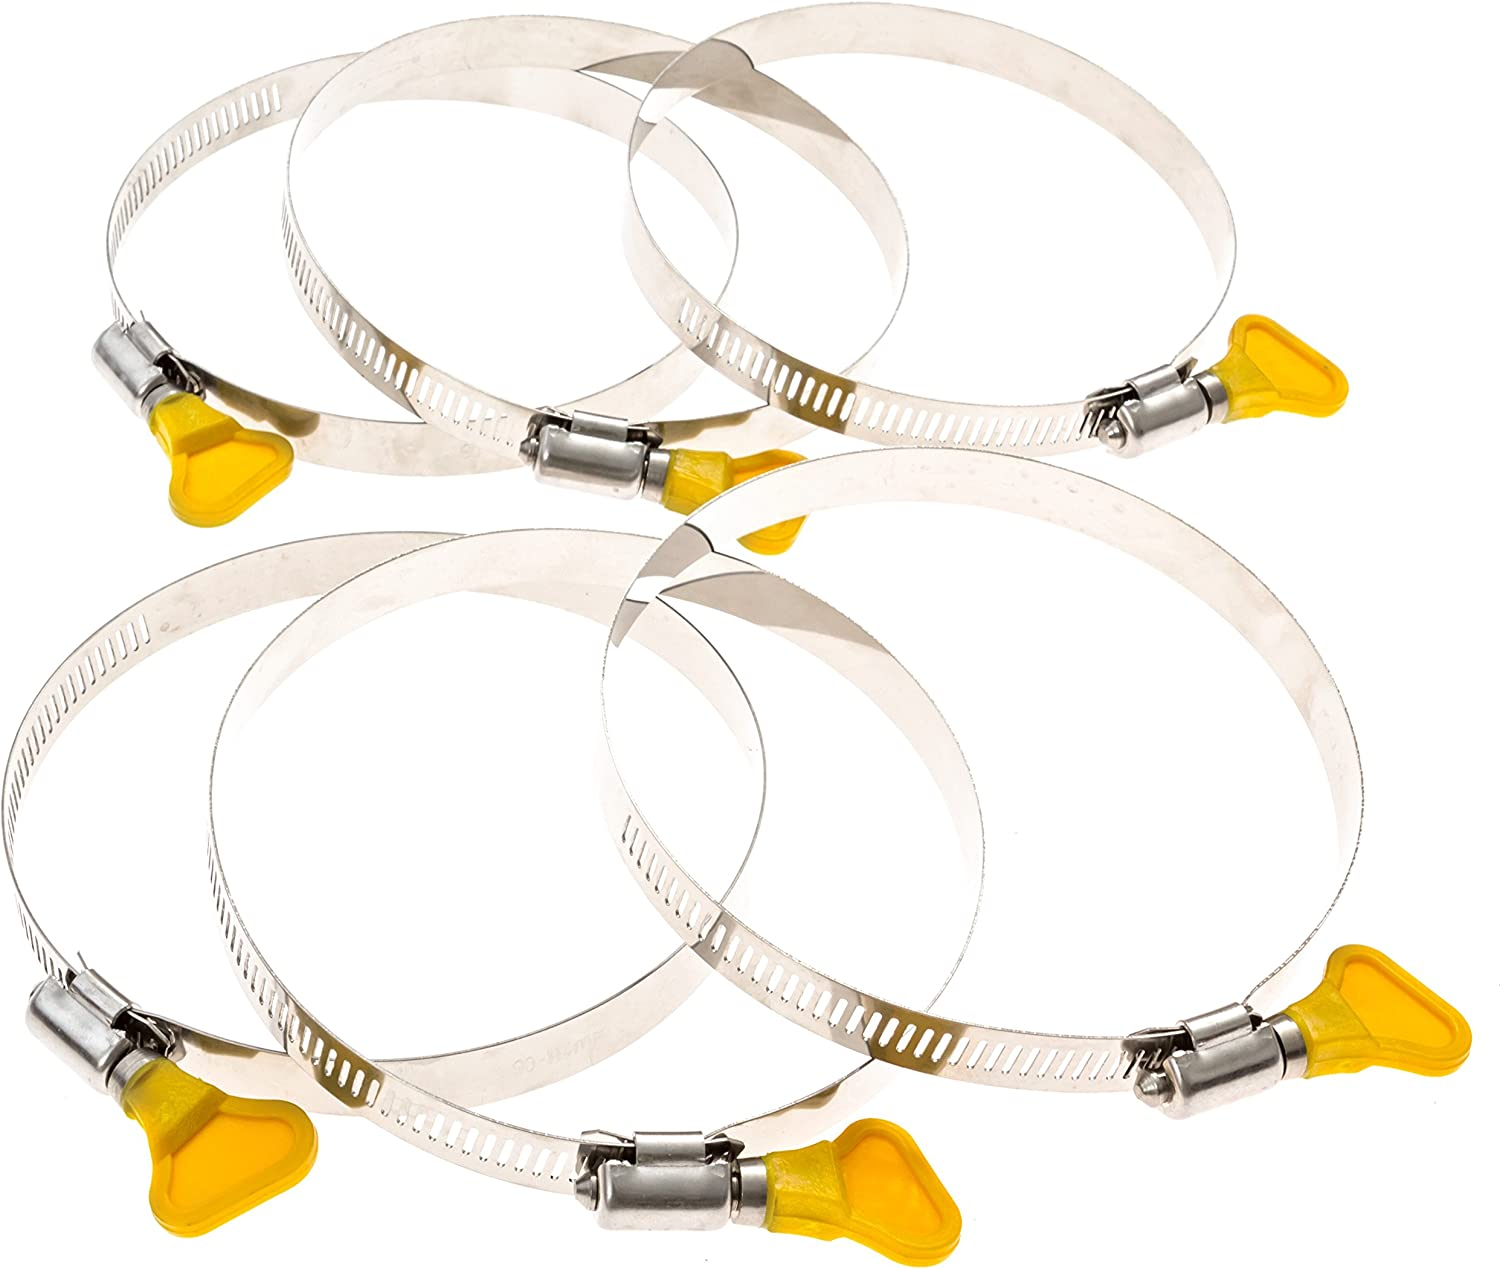 """1st Place Products 1/2 inch Wide 4 inch Key Hose Clamp Set - Pack of 6 - Great for Dryer Vents & Dust Collection Systems - 3 1/2"""" to 4 1/2"""""""